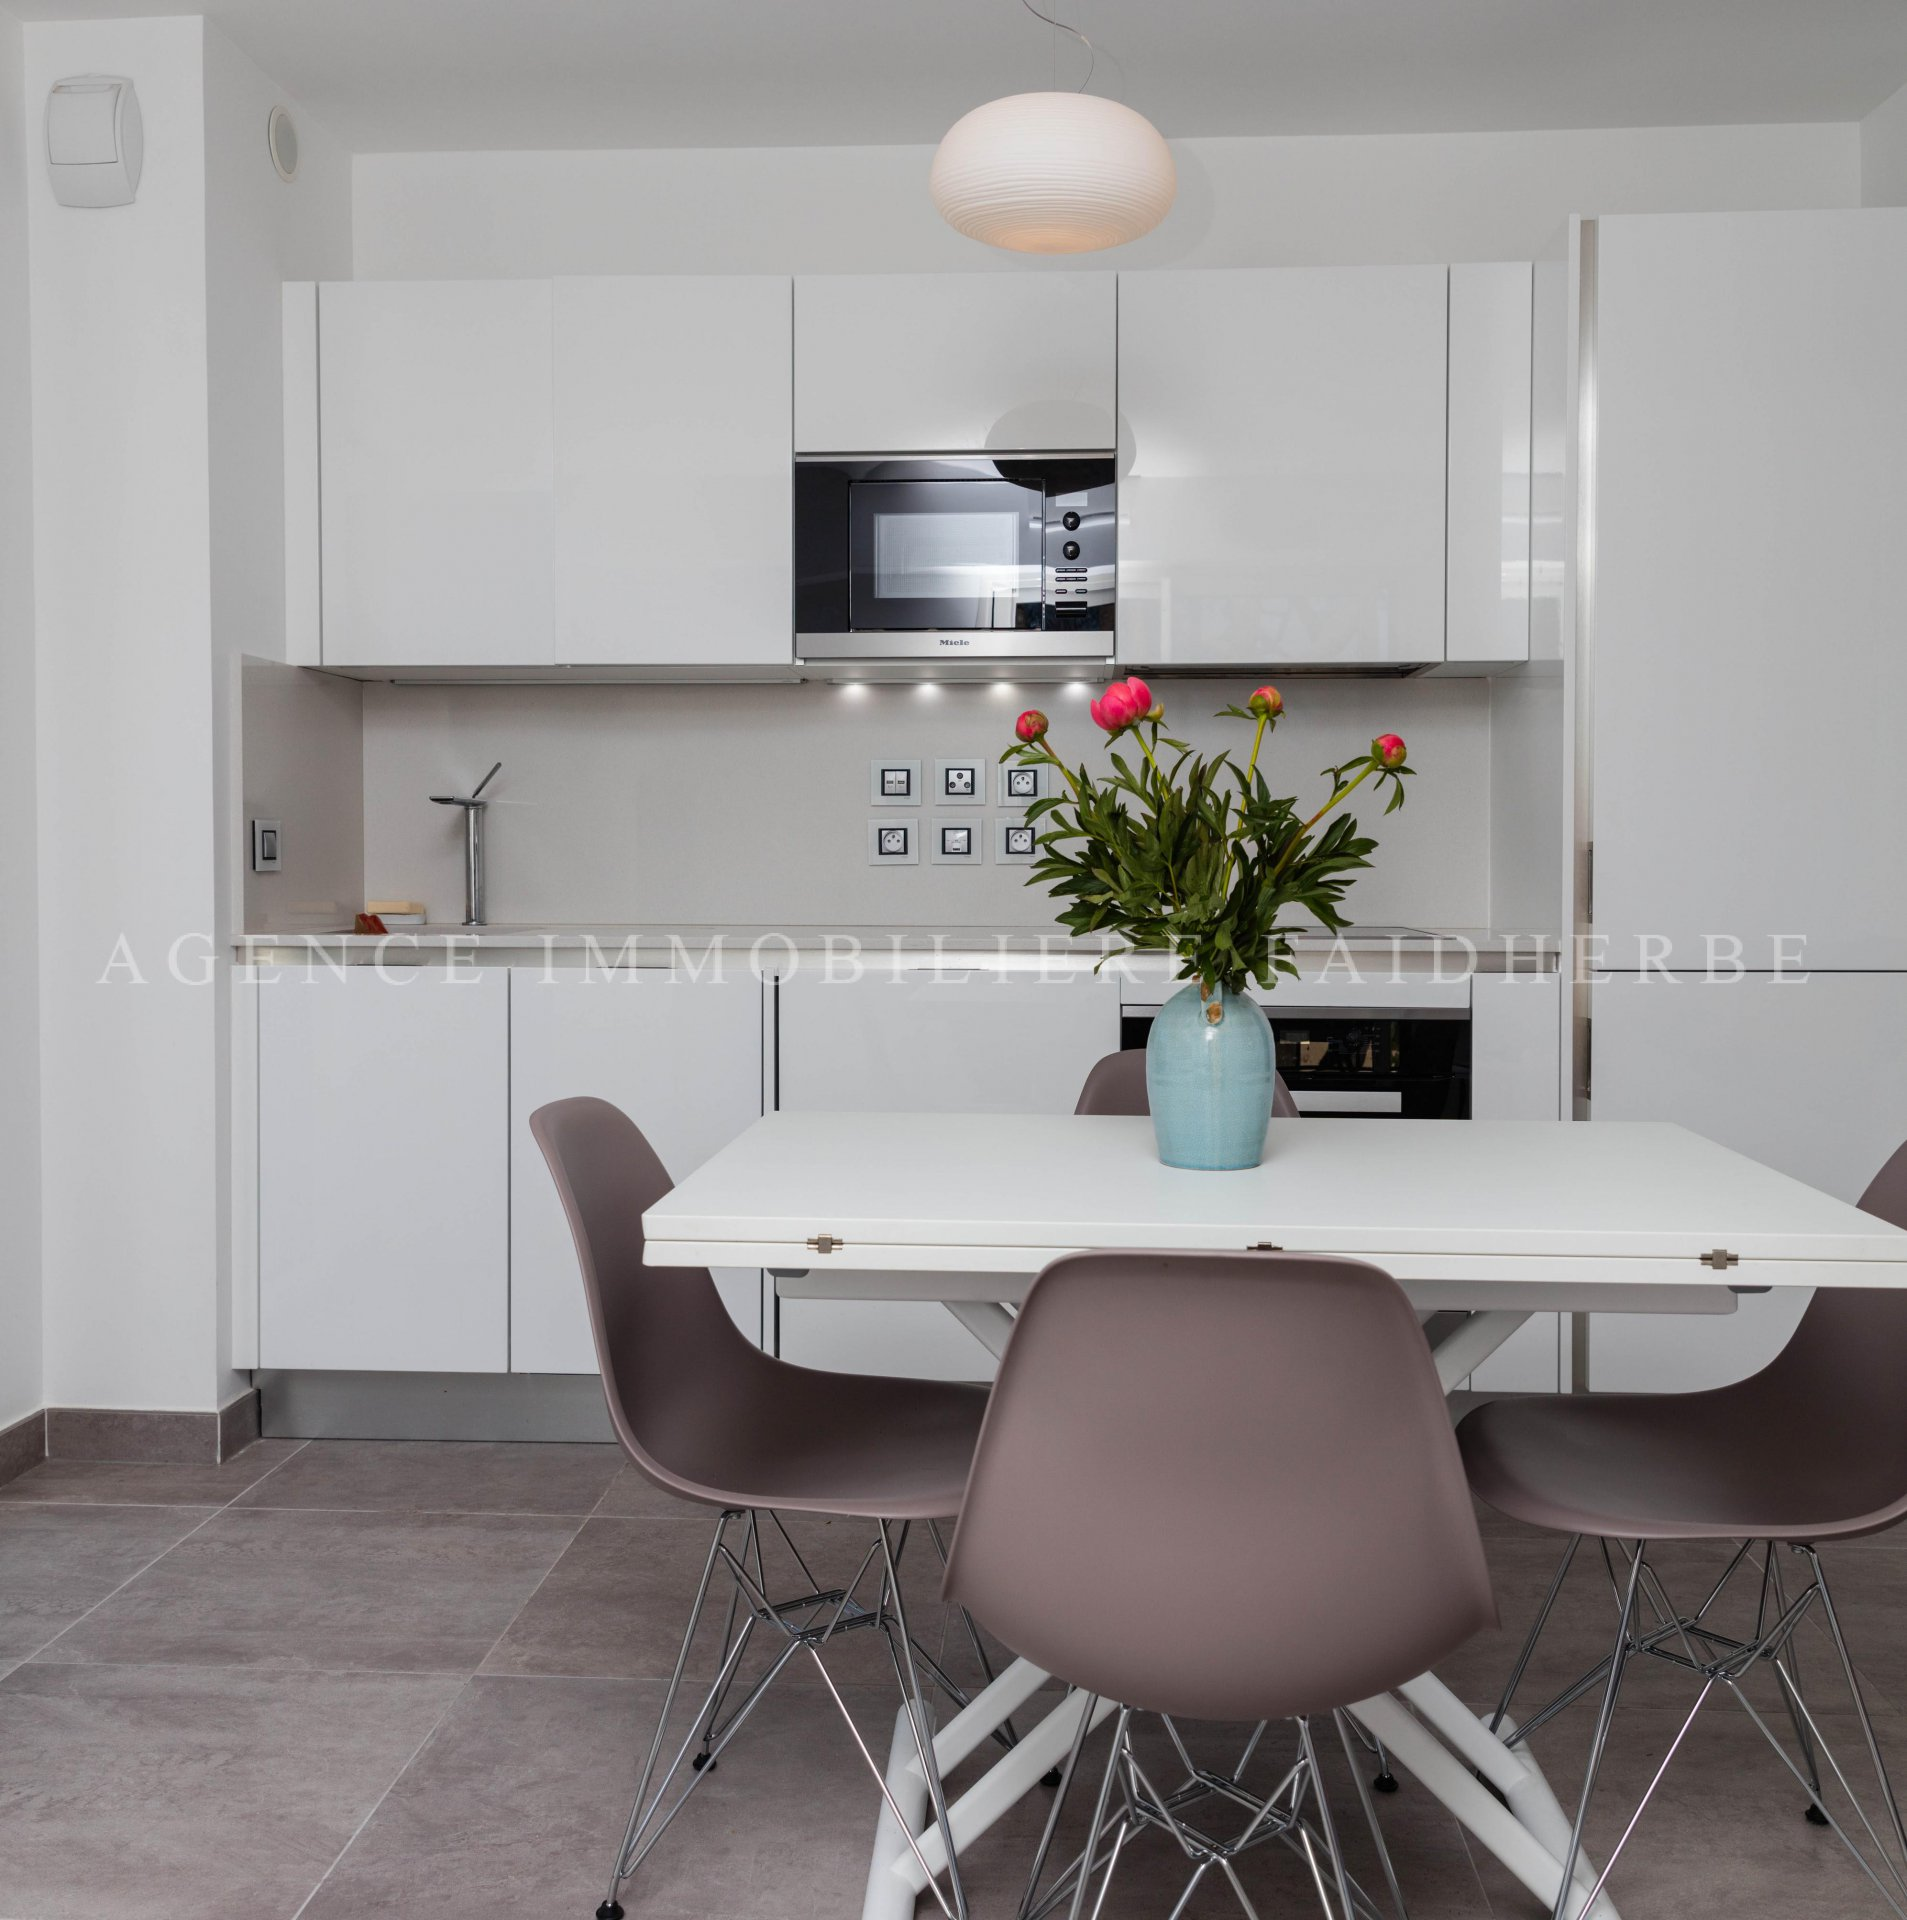 R sidence h teliere appartement 1 chambre for Residence hoteliere madrid